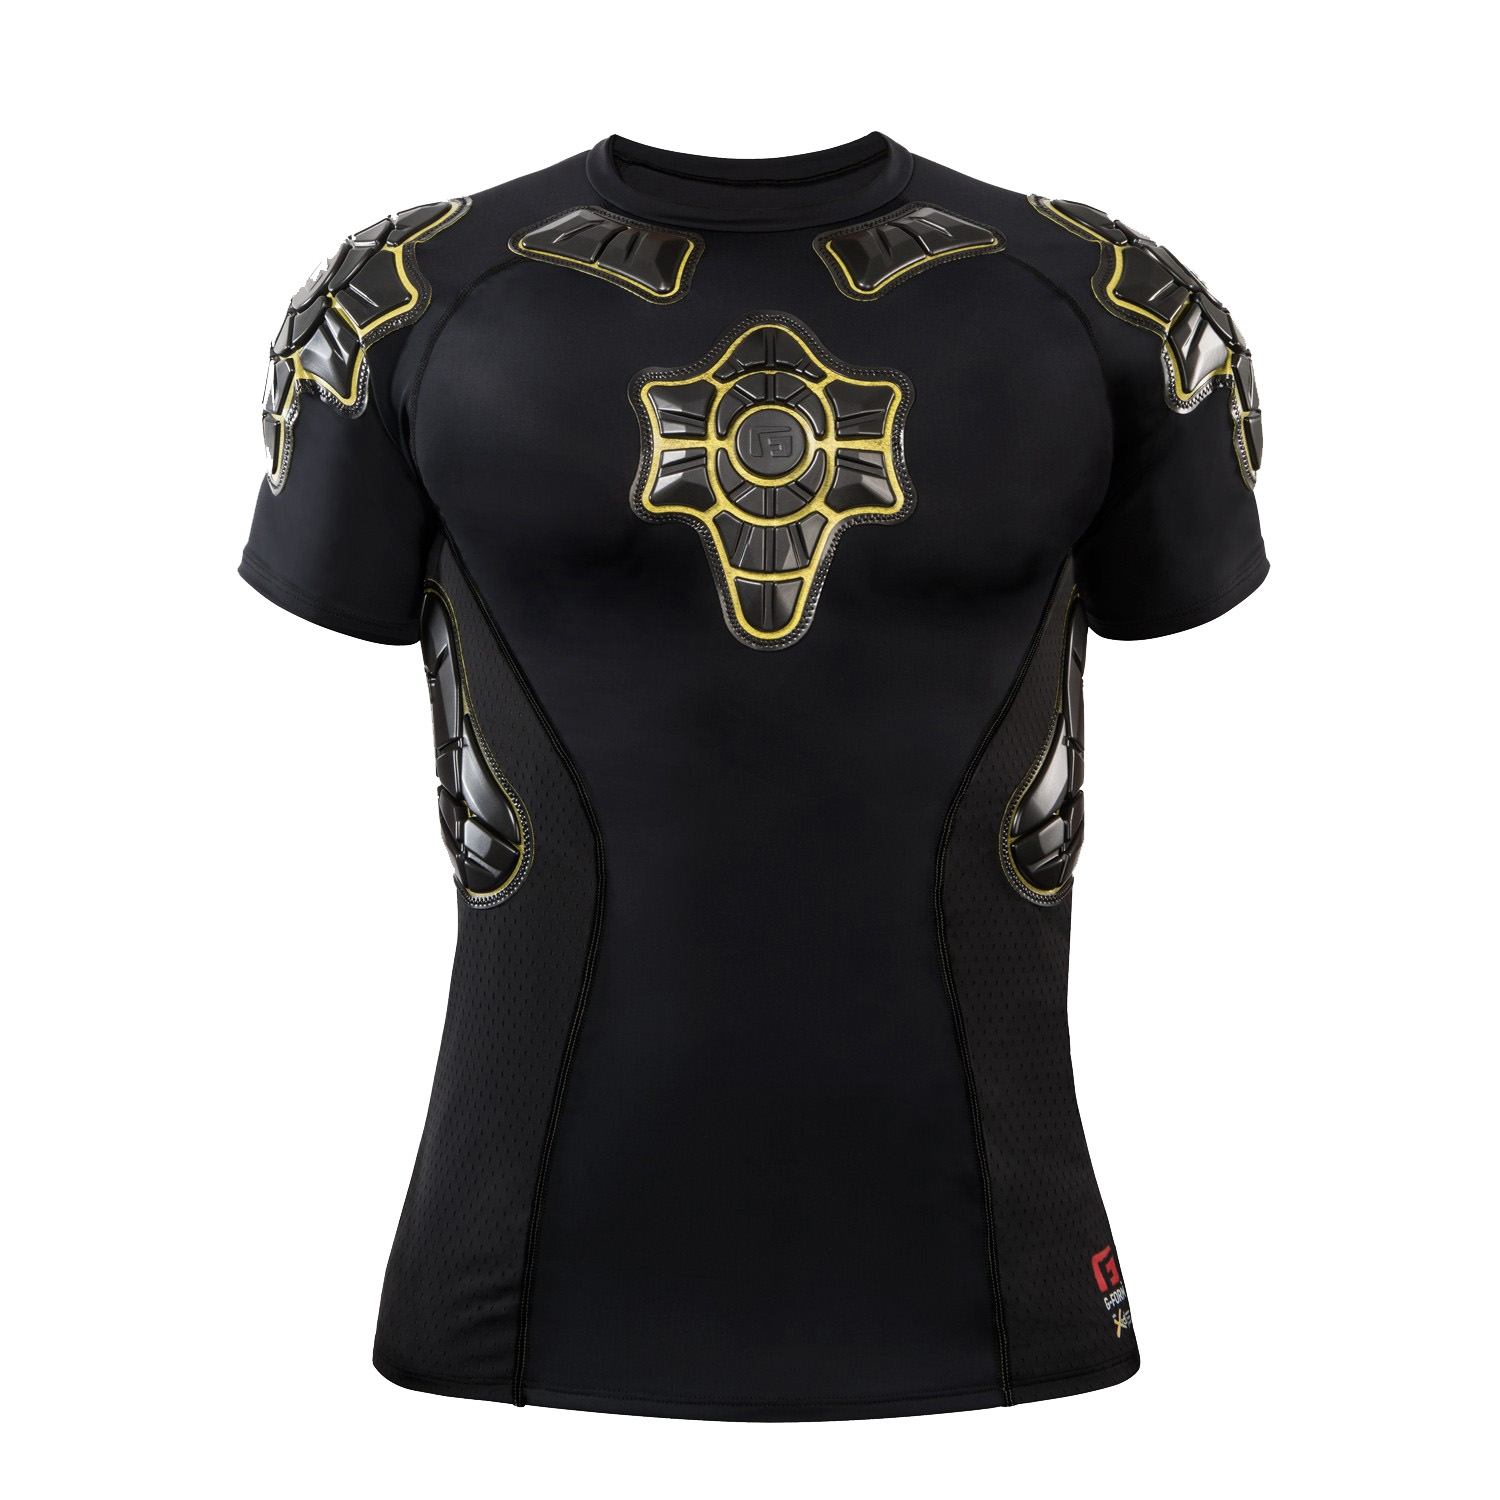 Tee-shirt de protection G-Form Pro-X Noir/Jaune - M